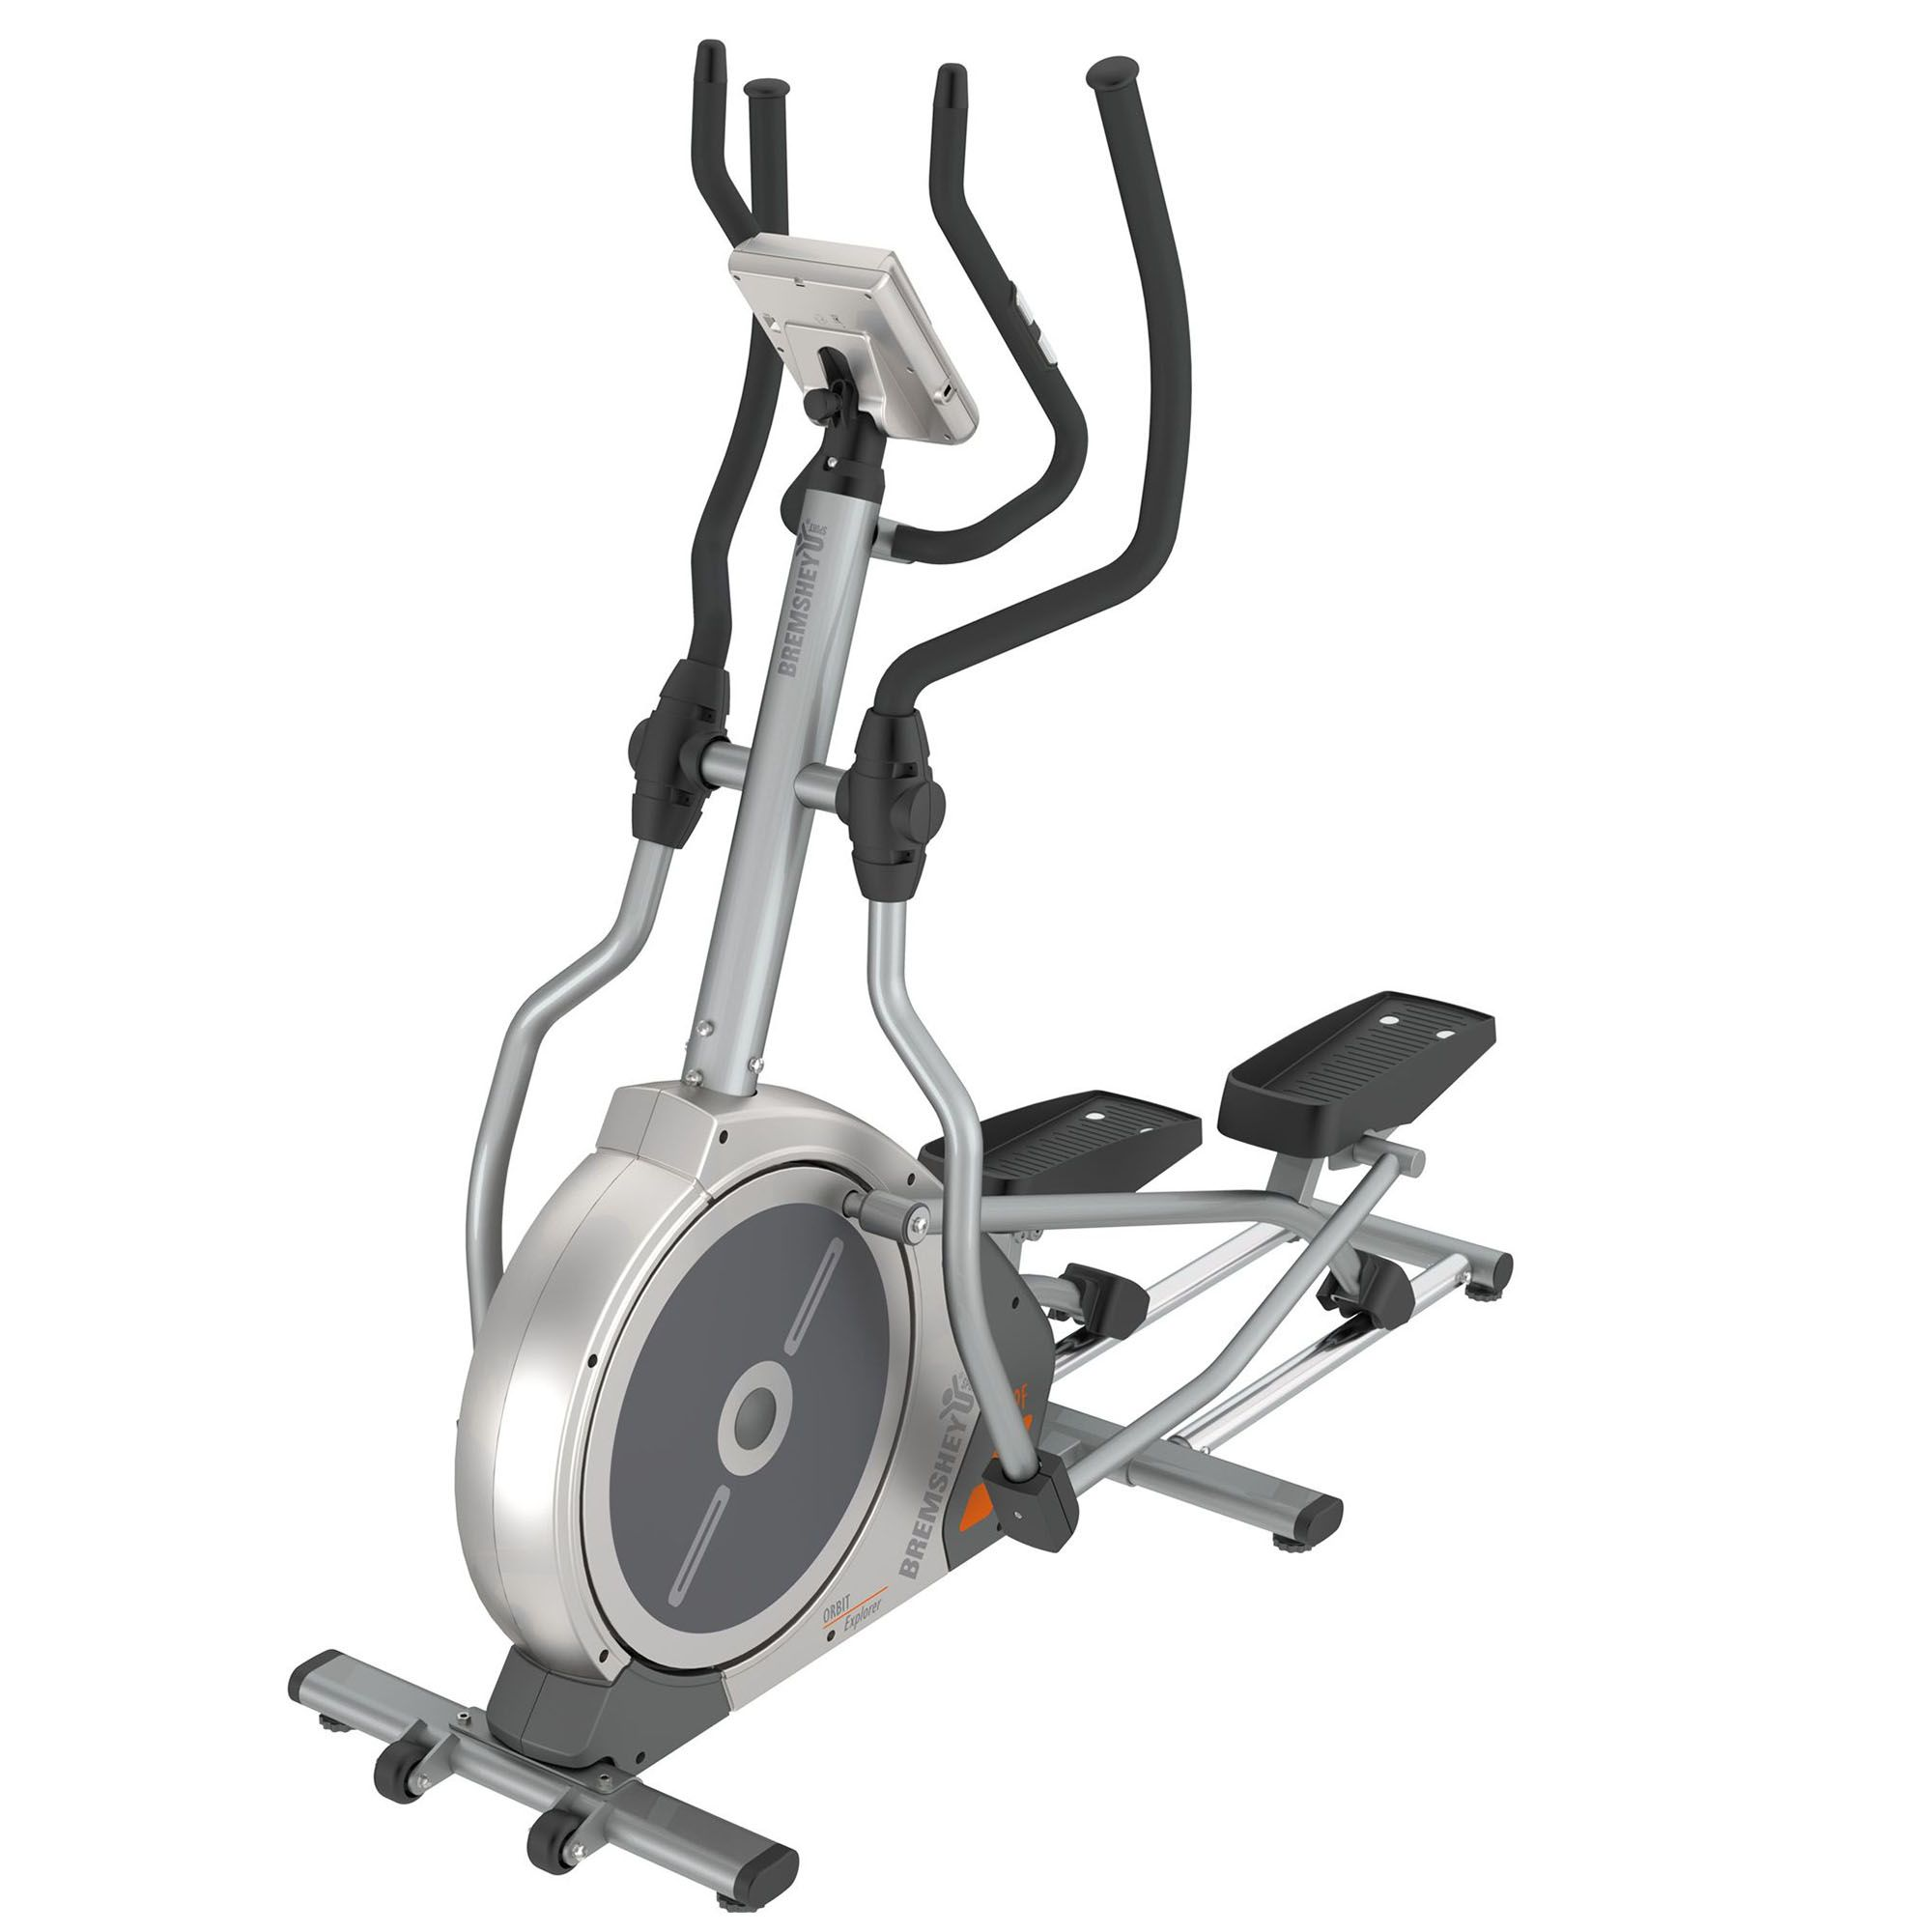 orbit elliptical cross trainer manual